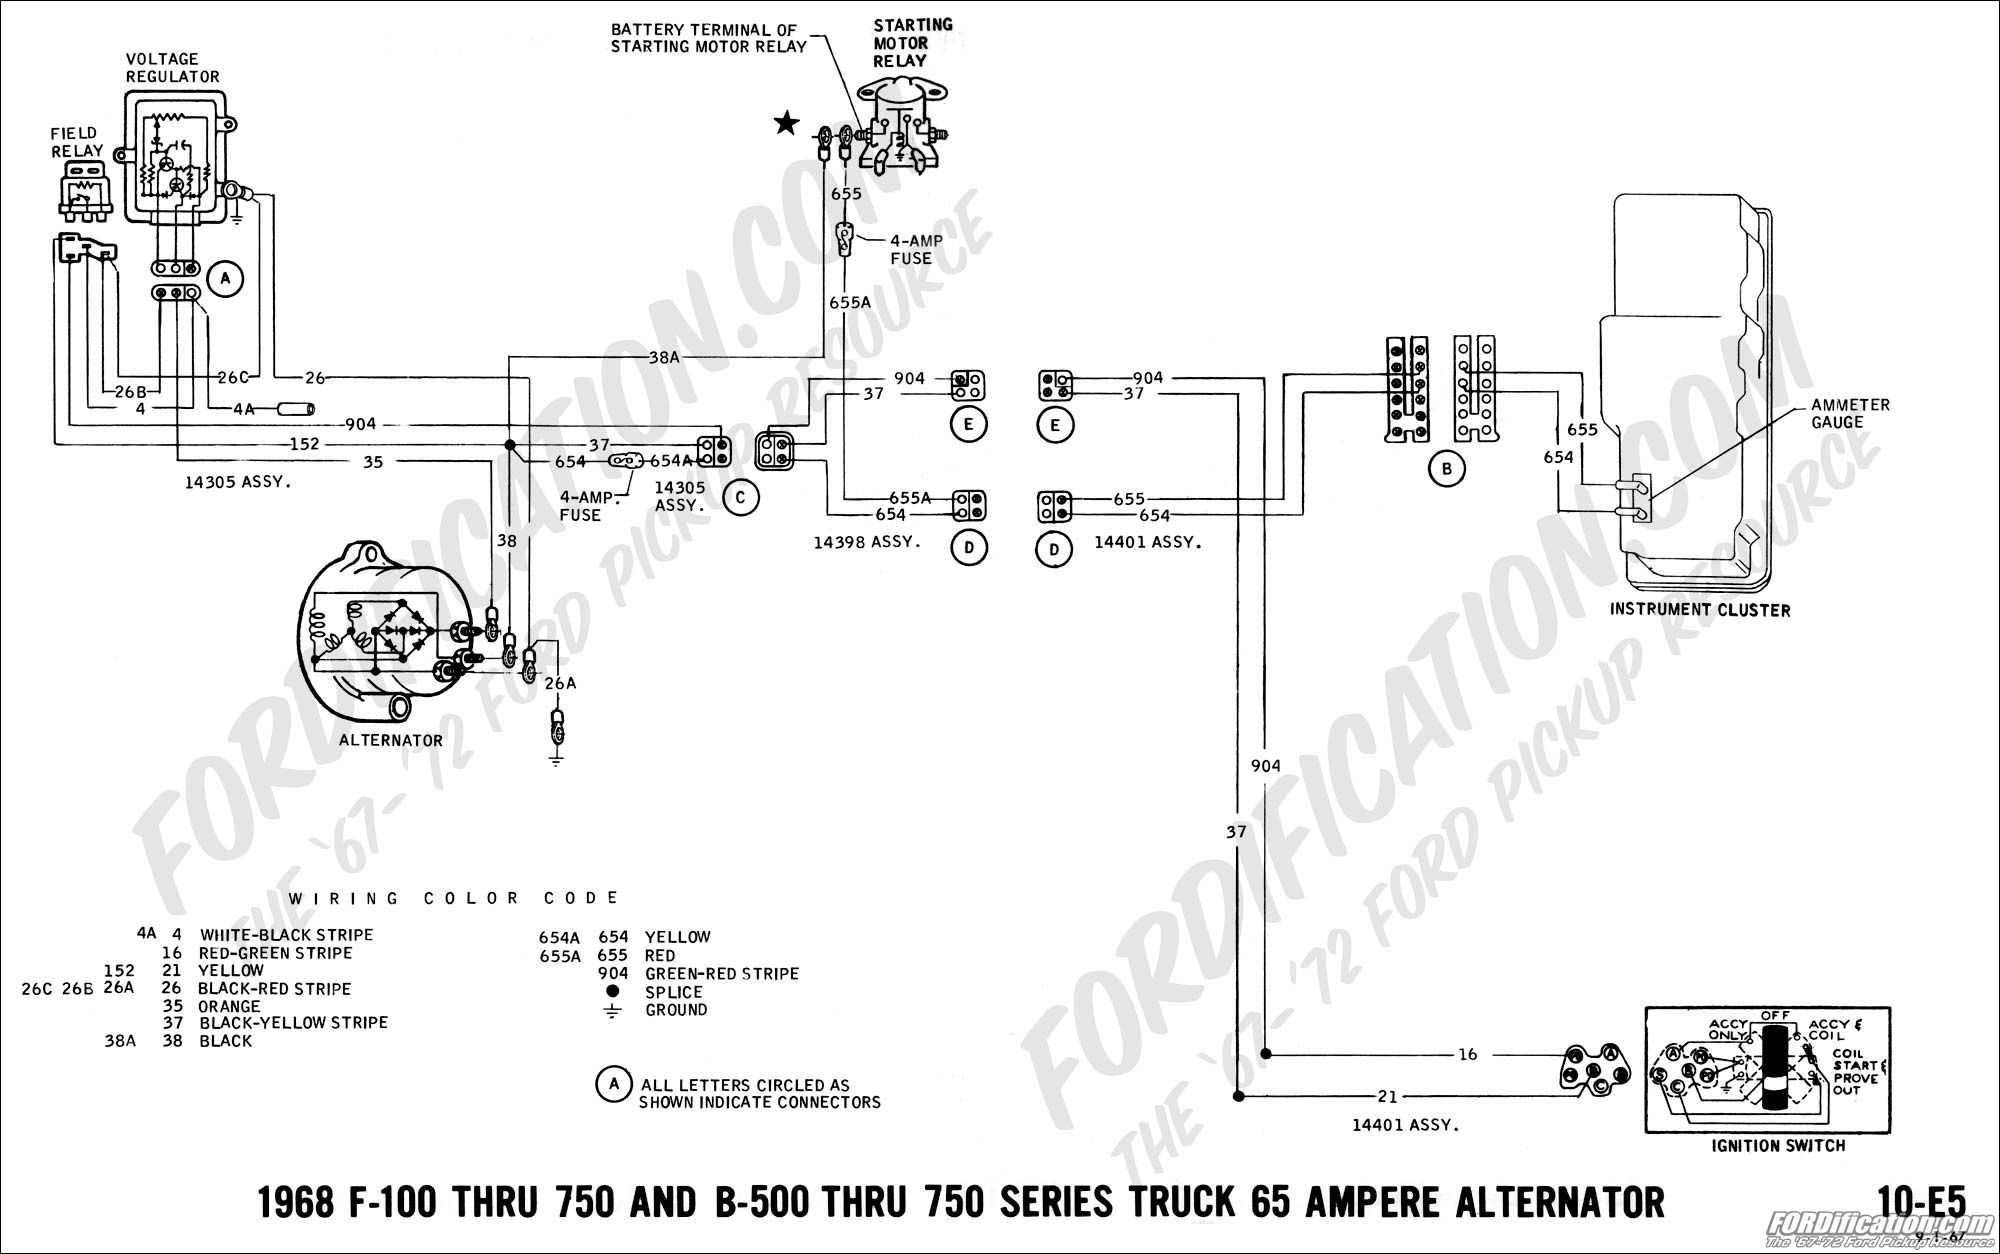 small resolution of 1978 f150 alternator wiring diagram wiring diagram third level dodge alternator wiring diagram 1985 ford f 150 alternator wiring diagram